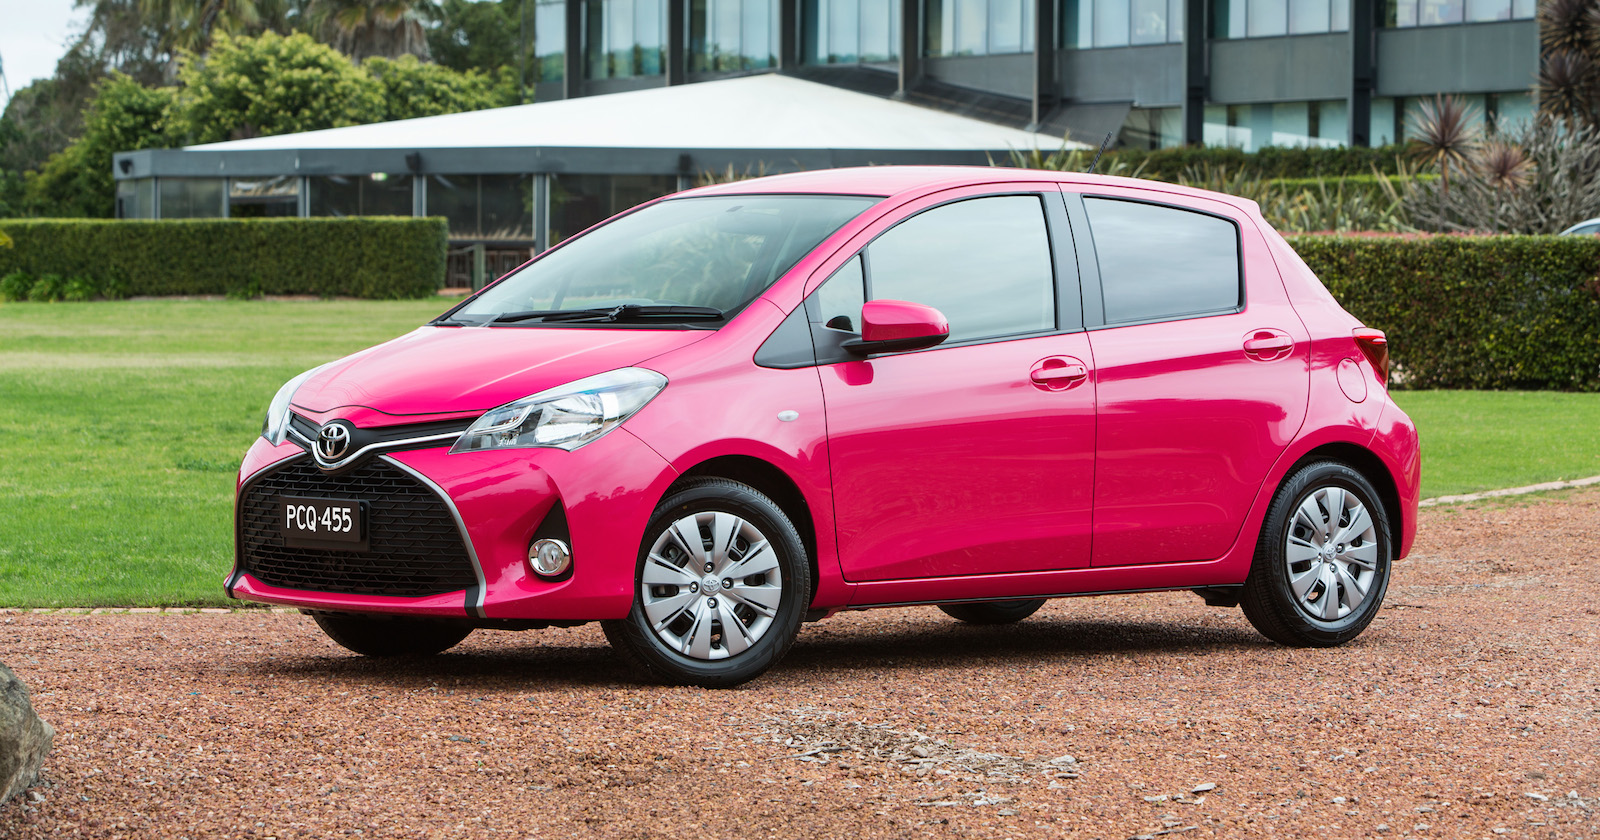 2015 toyota yaris pricing and specifications photos caradvice. Black Bedroom Furniture Sets. Home Design Ideas